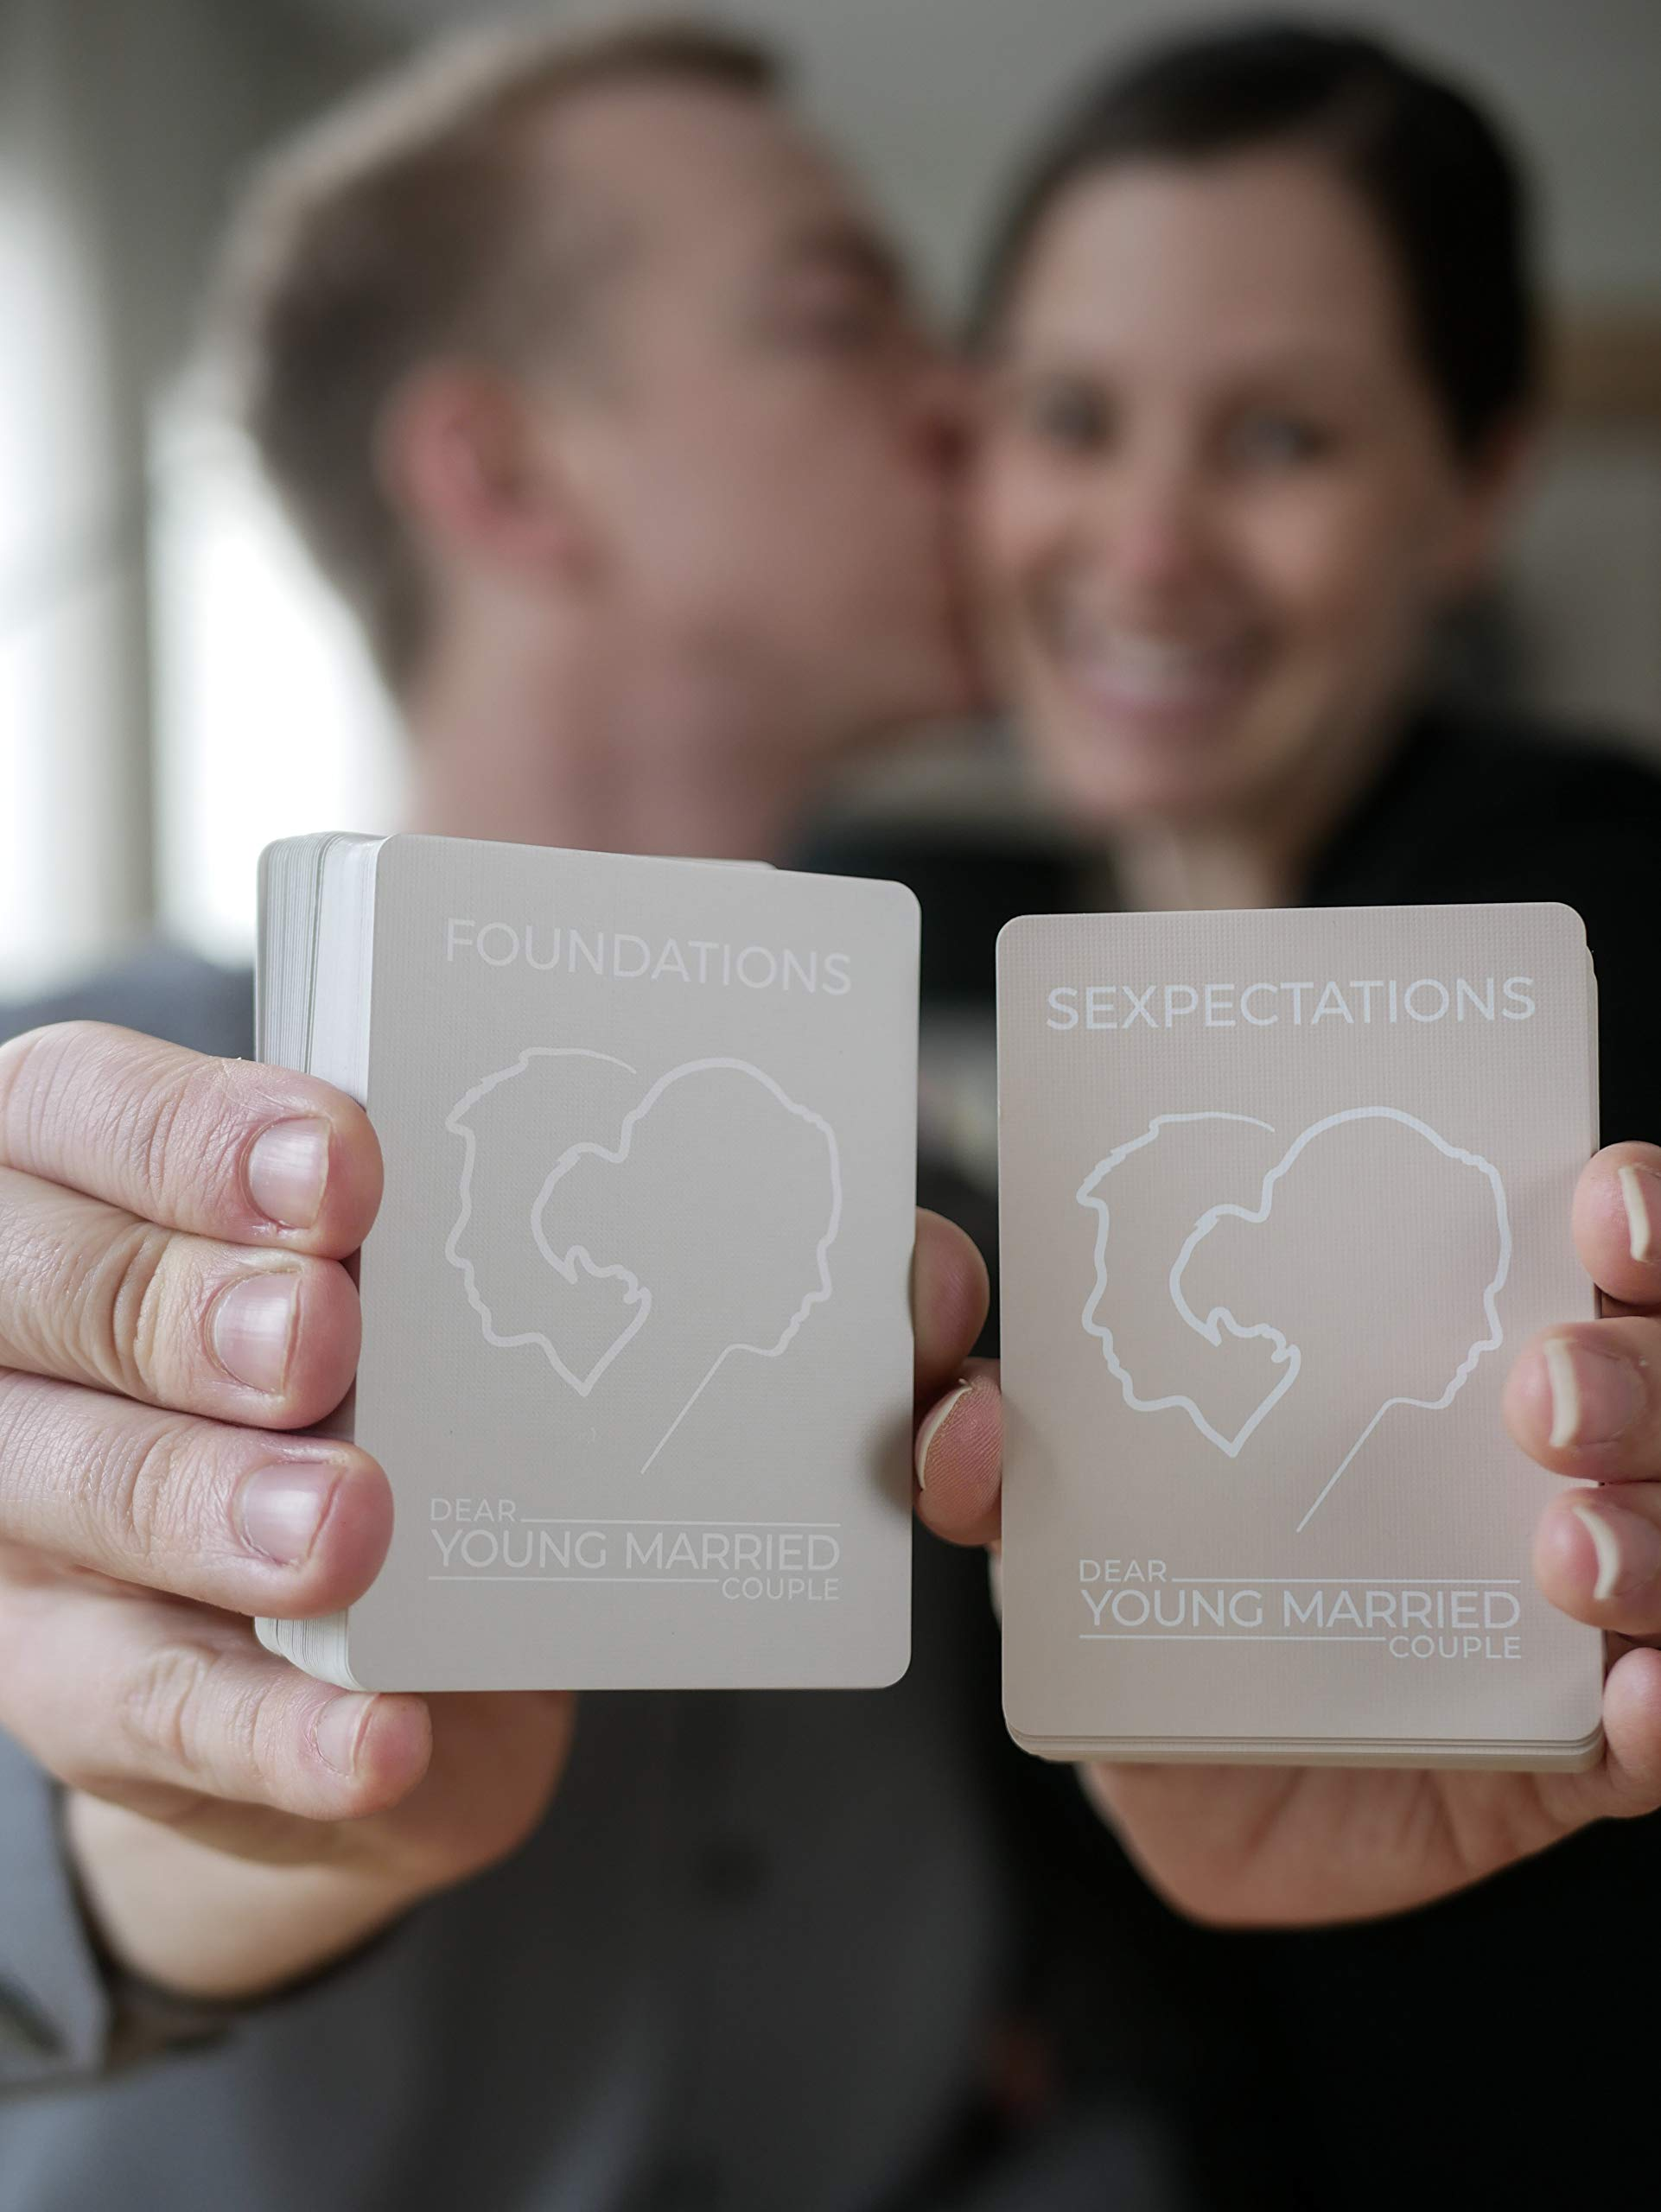 SEXPECTATIONS Card Deck - Conversation Starters for Couples - 52 Questions on Intimacy - Fun Marriage Road Trip Cards Game - Communication in Relationships - Honeymoon - Wedding Gift by Dear Young Married Couple